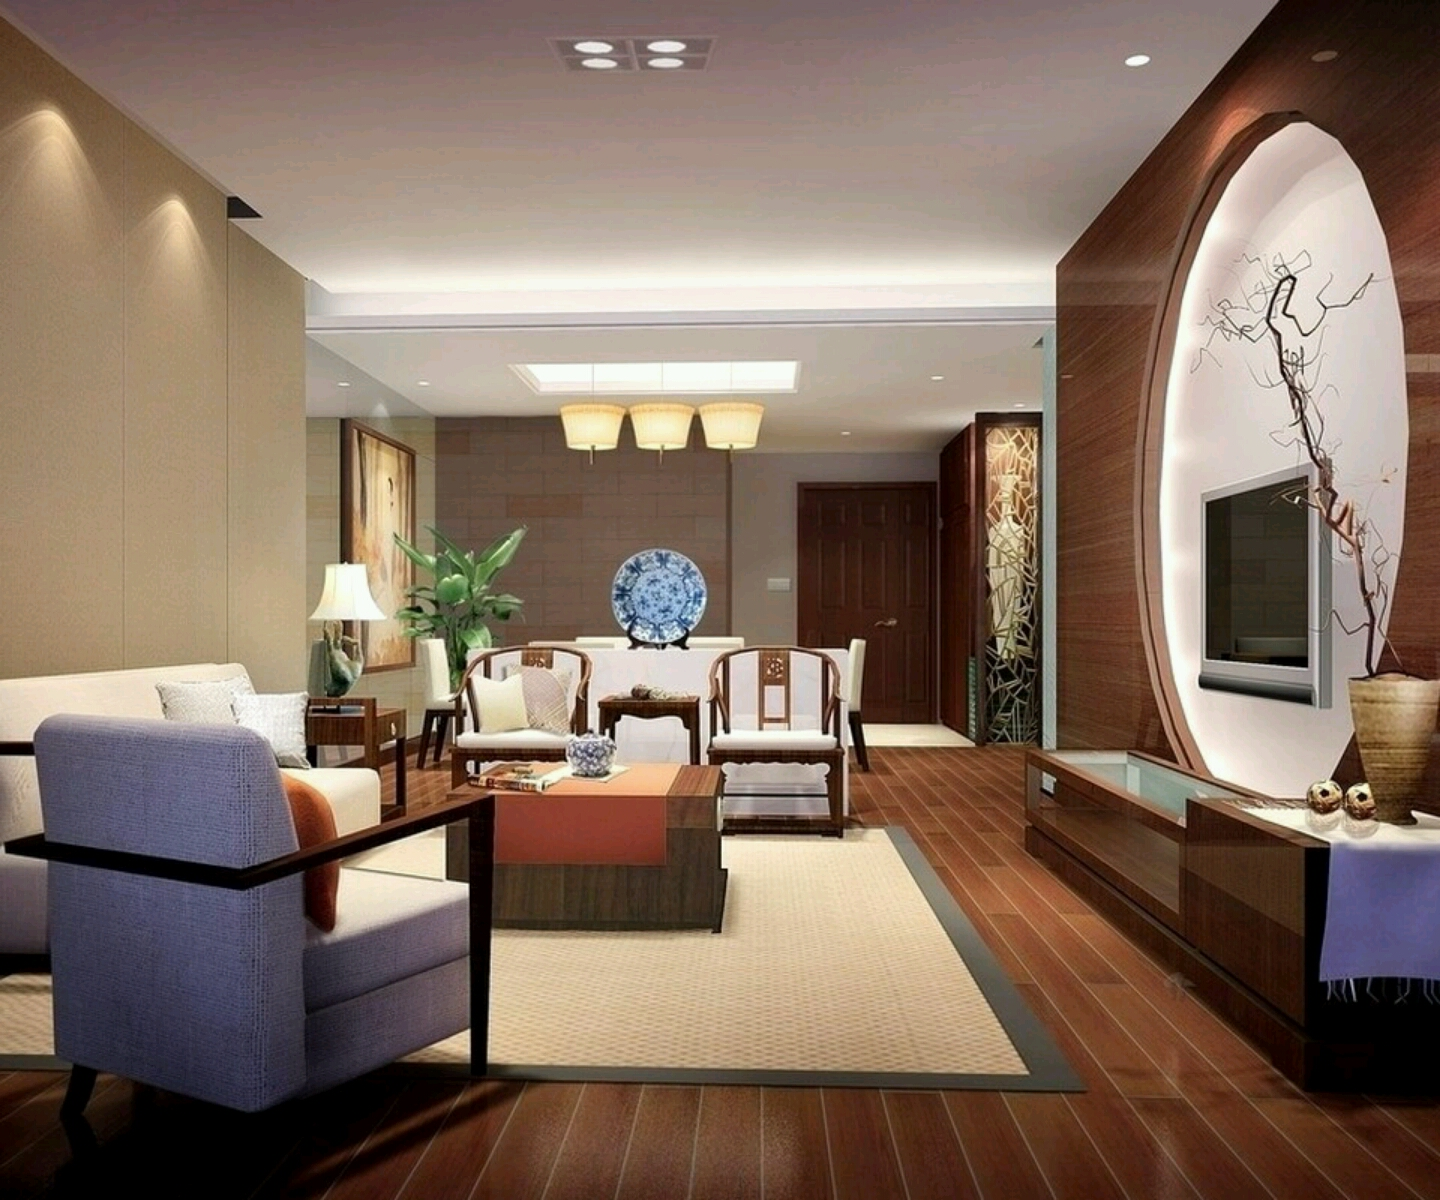 Luxury homes interior decoration living room designs ideas modern home designs - Home living room design ...